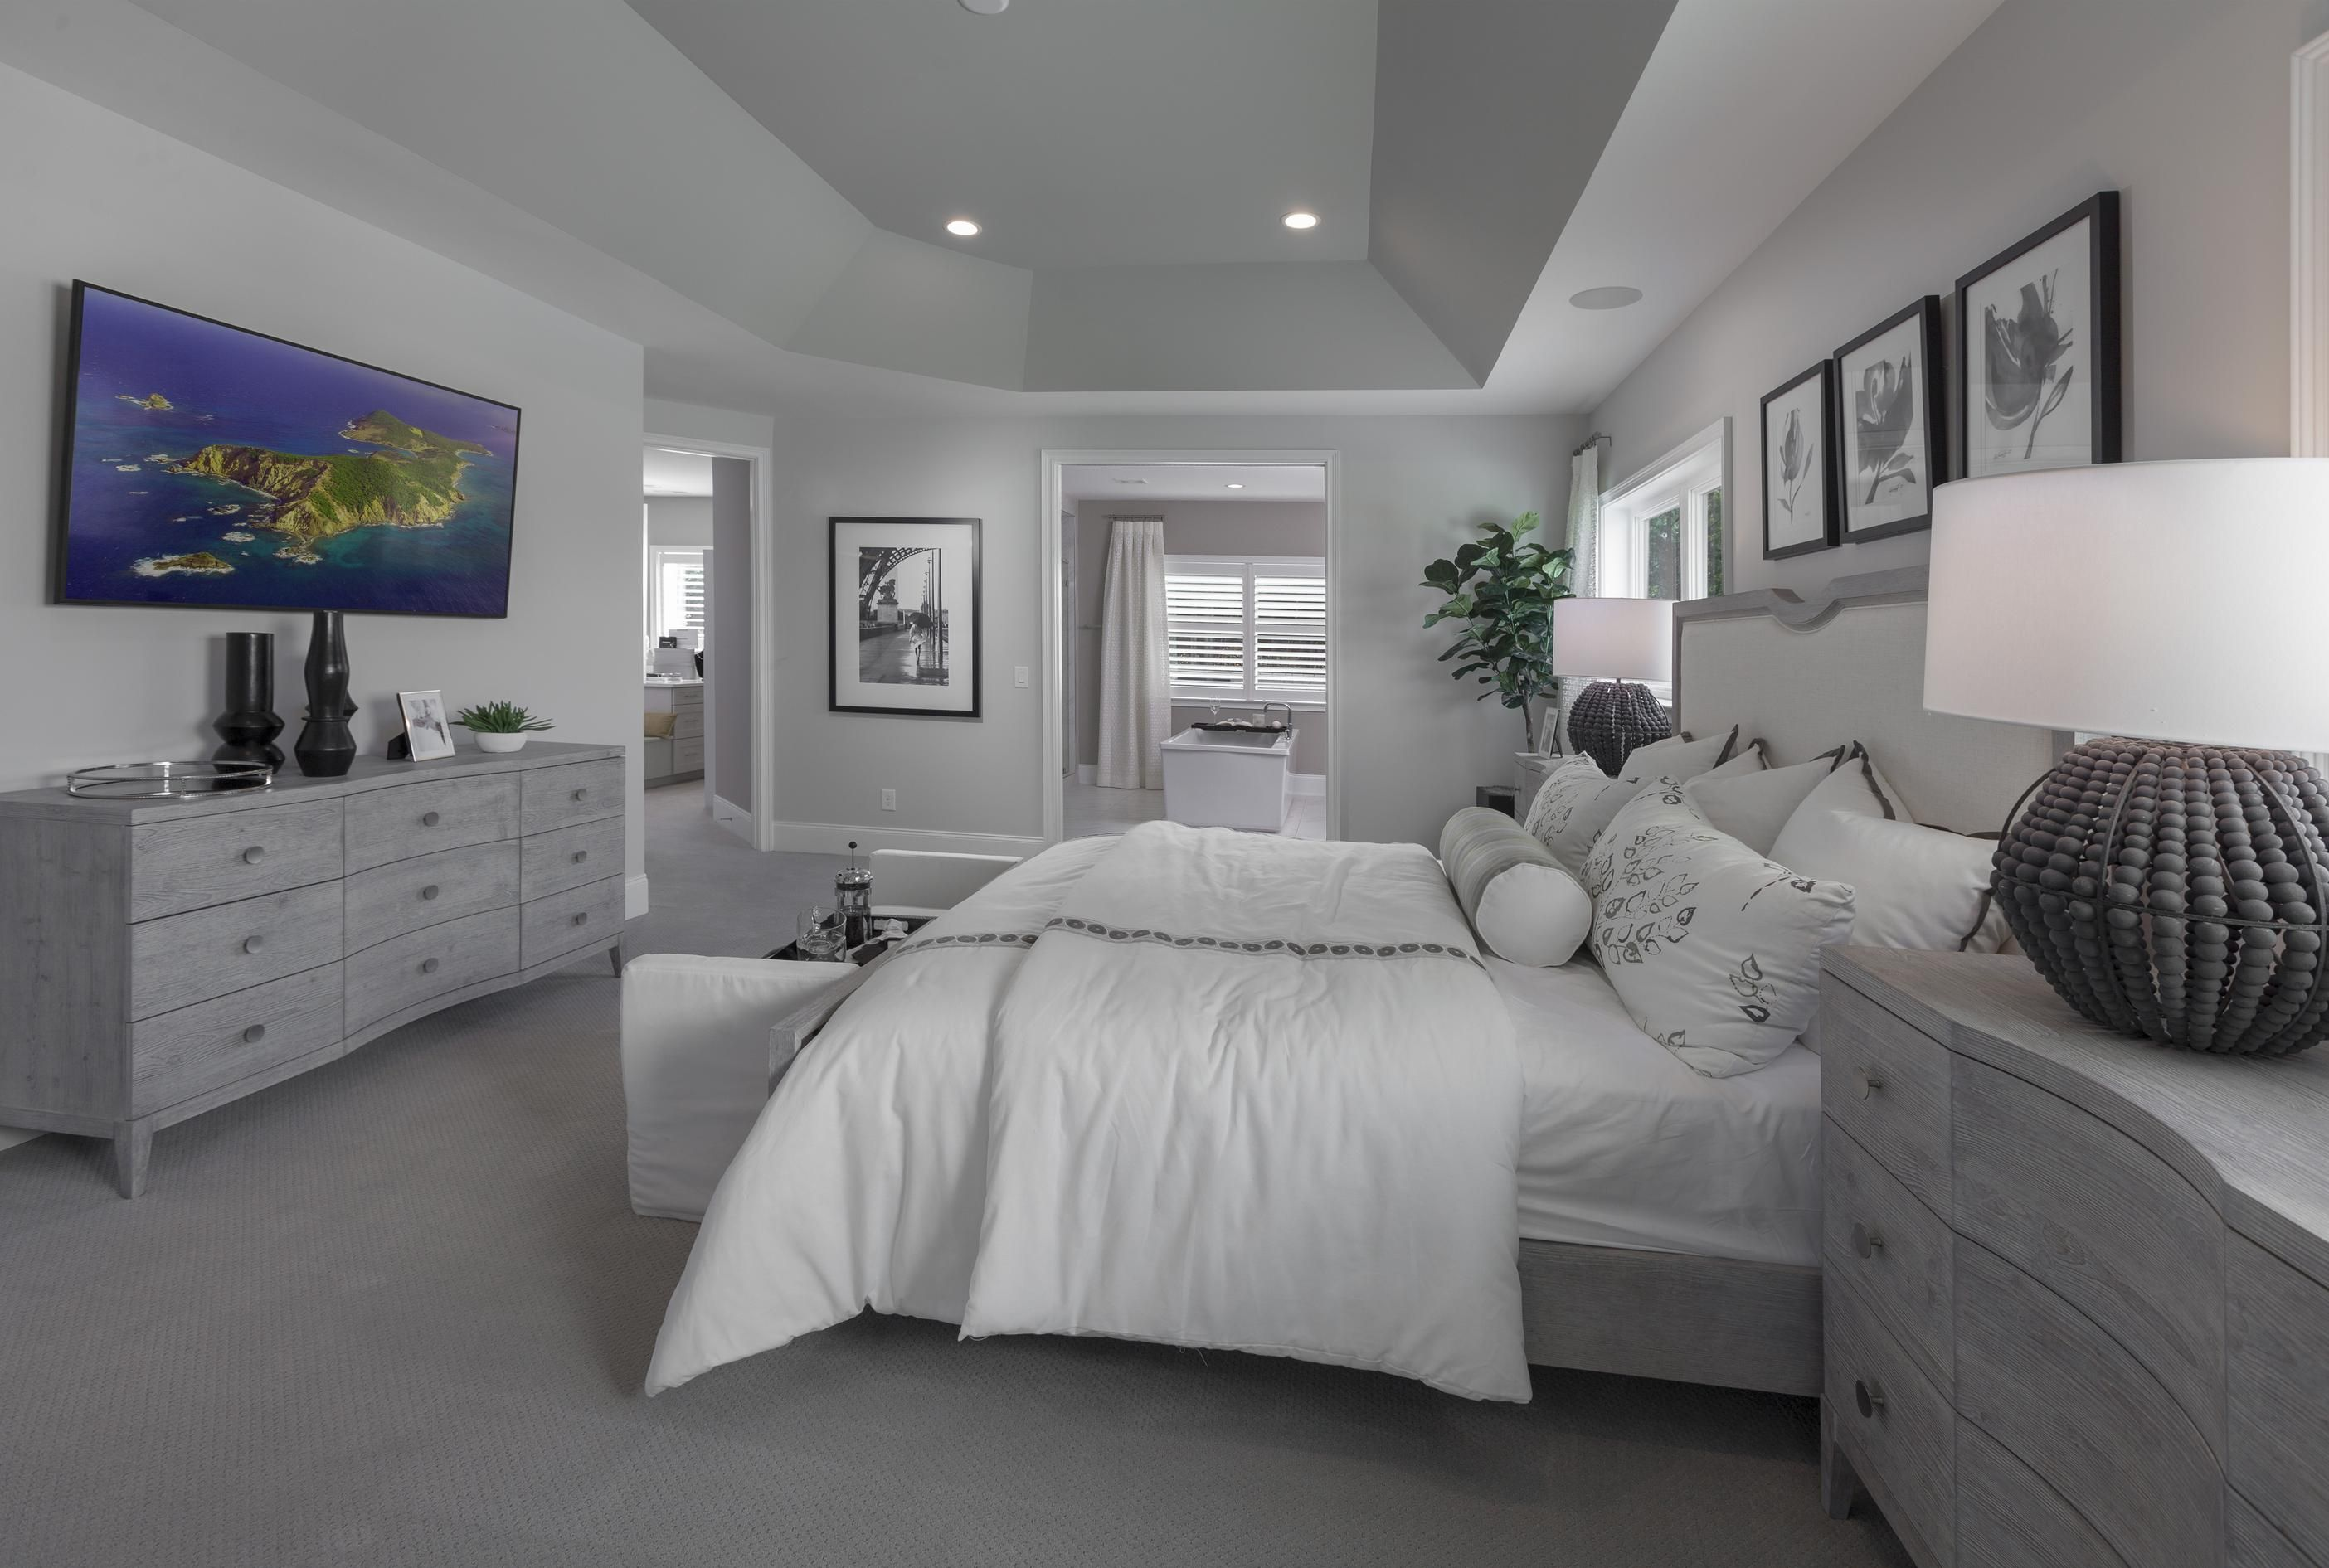 A Calming Color Scheme And Spacious Design Make Falling Asleep In This Master Bedroom A Breeze Pictured A Luxurious Bedrooms House Master Bedroom Ideas Home Spacious and luxurious bedroom